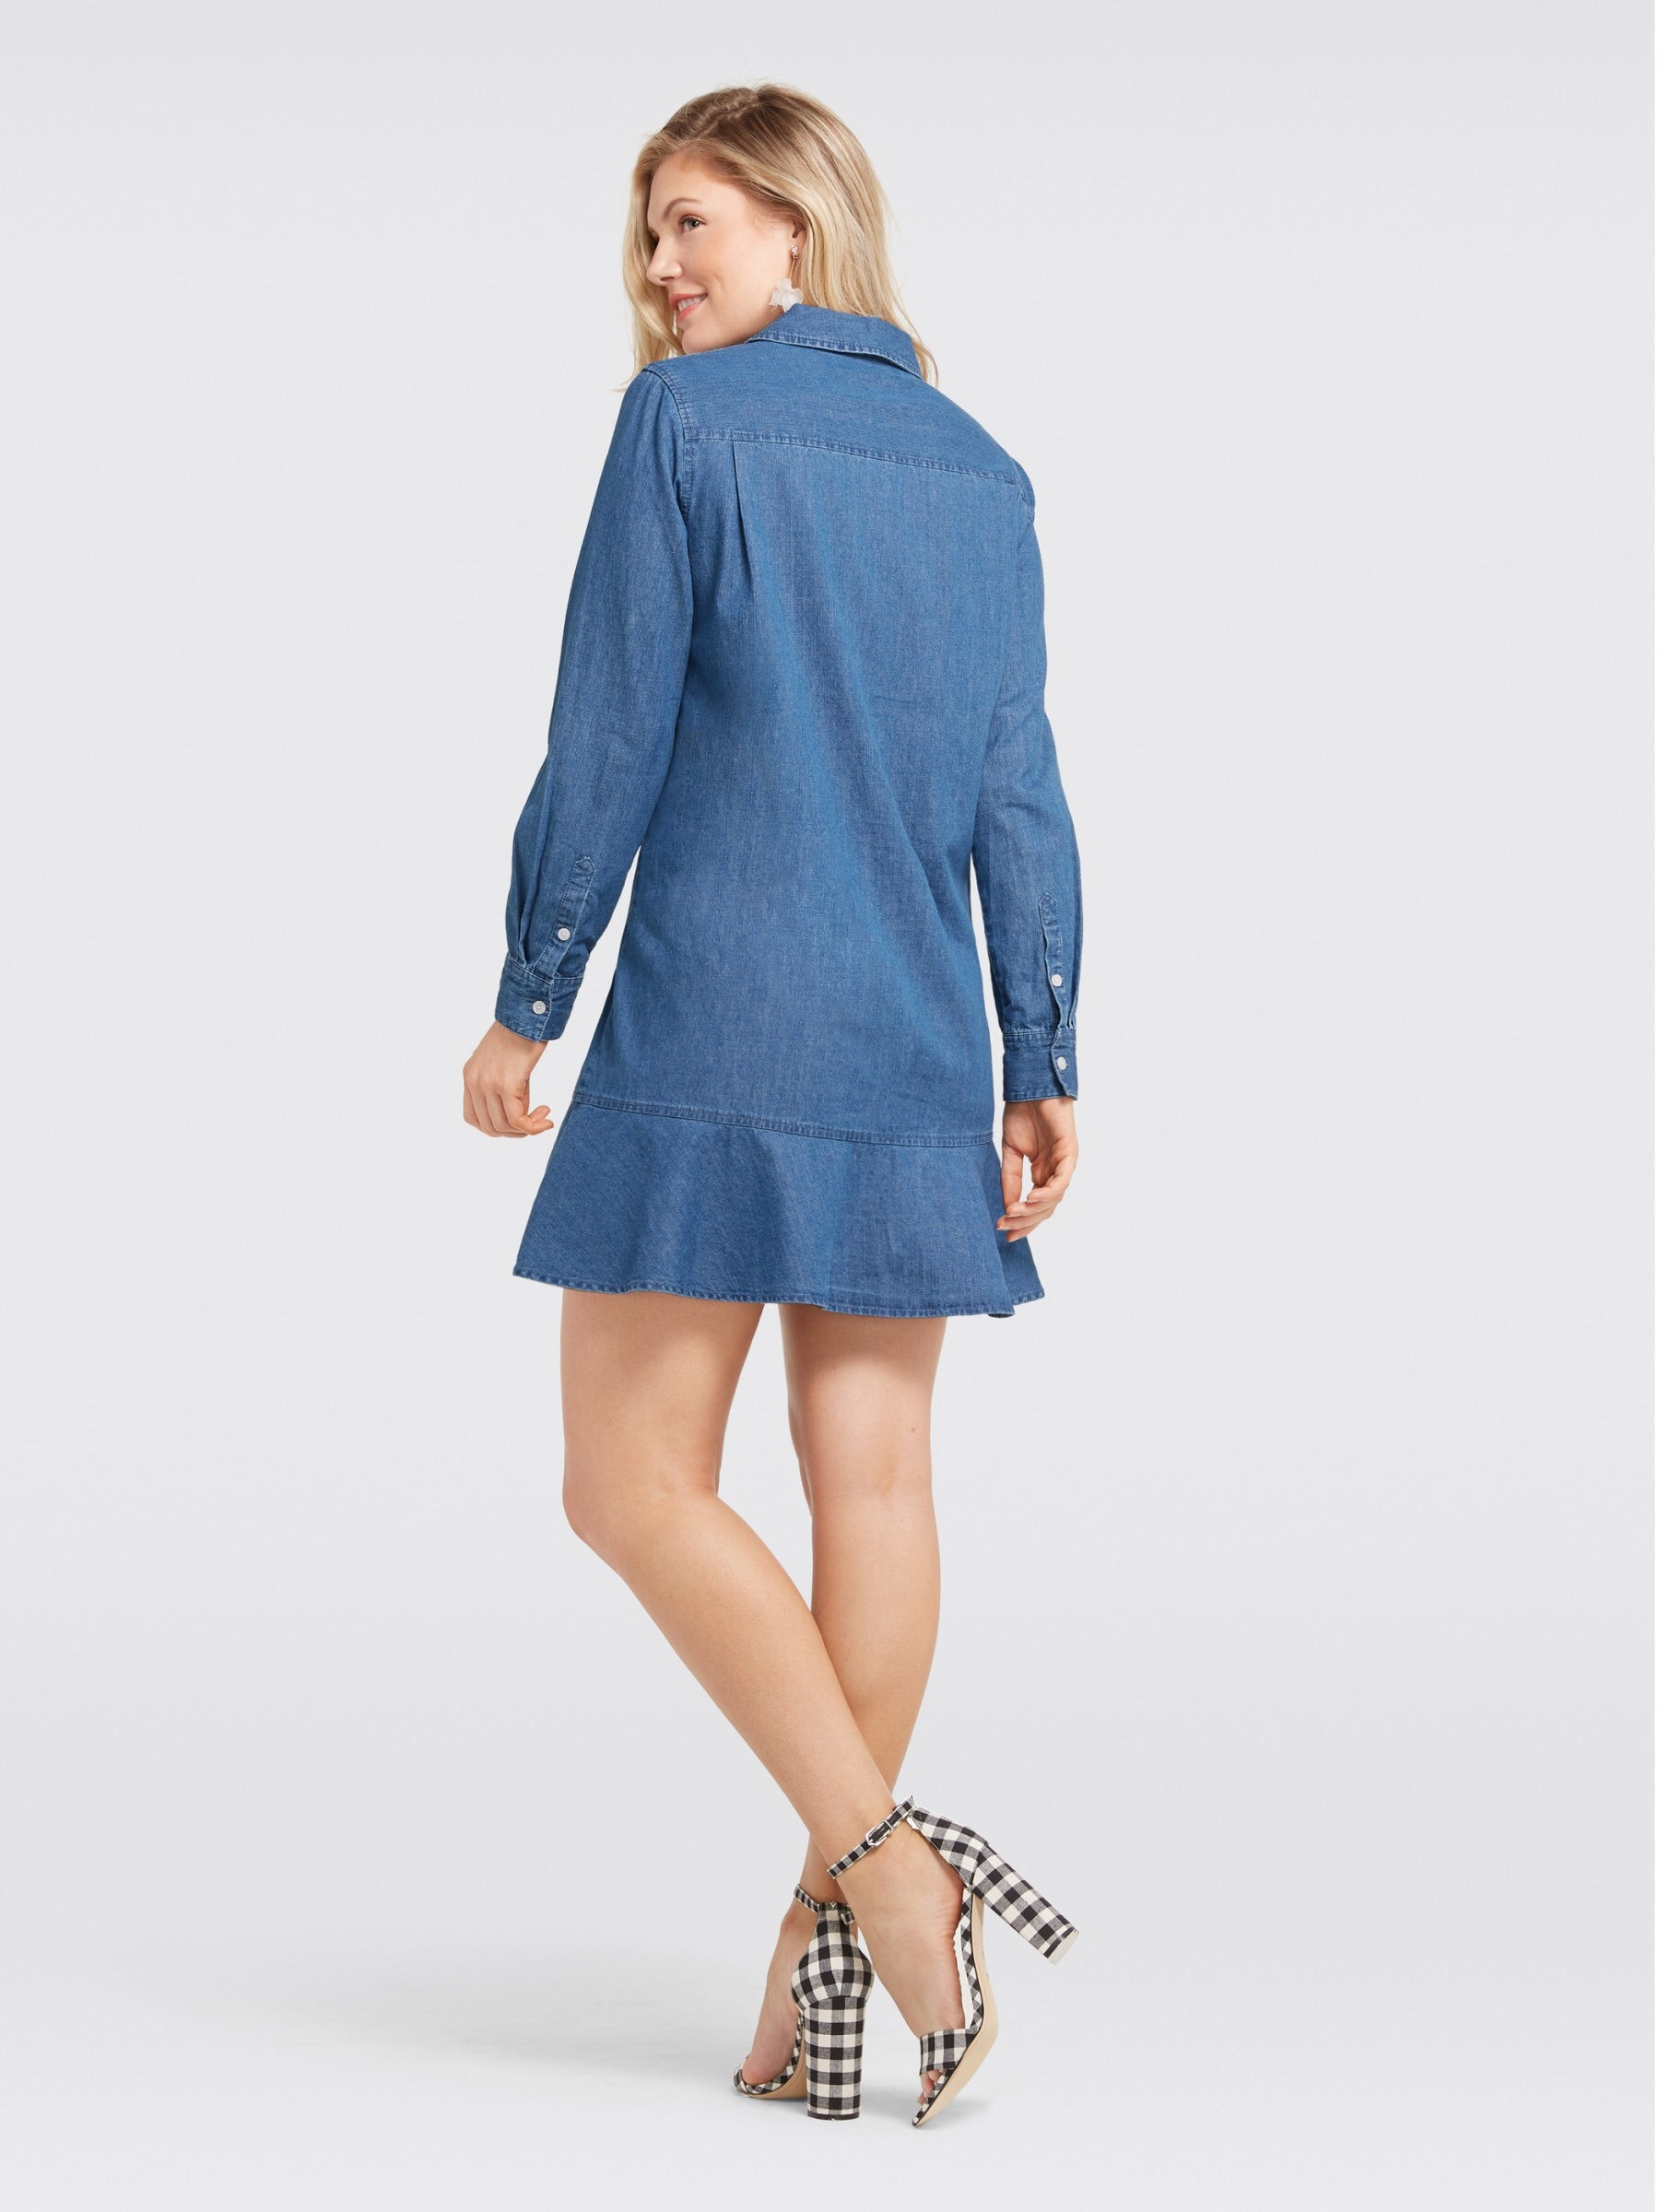 Chambray Tulip Shirtdress